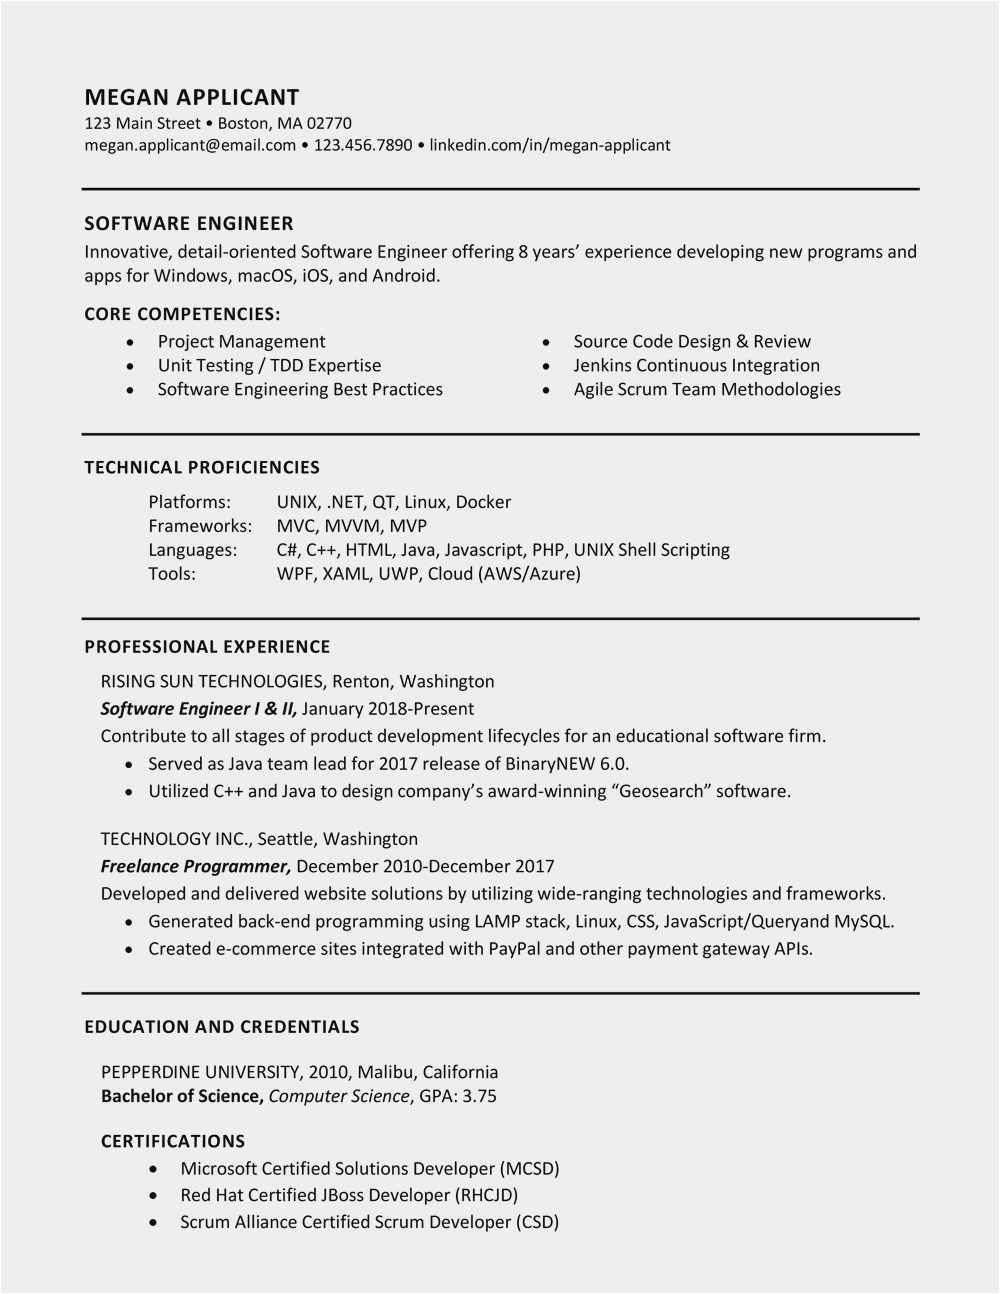 Examples Of Skills To Include On A Resume In 2021 Resume Examples Resume Skills Good Resume Examples